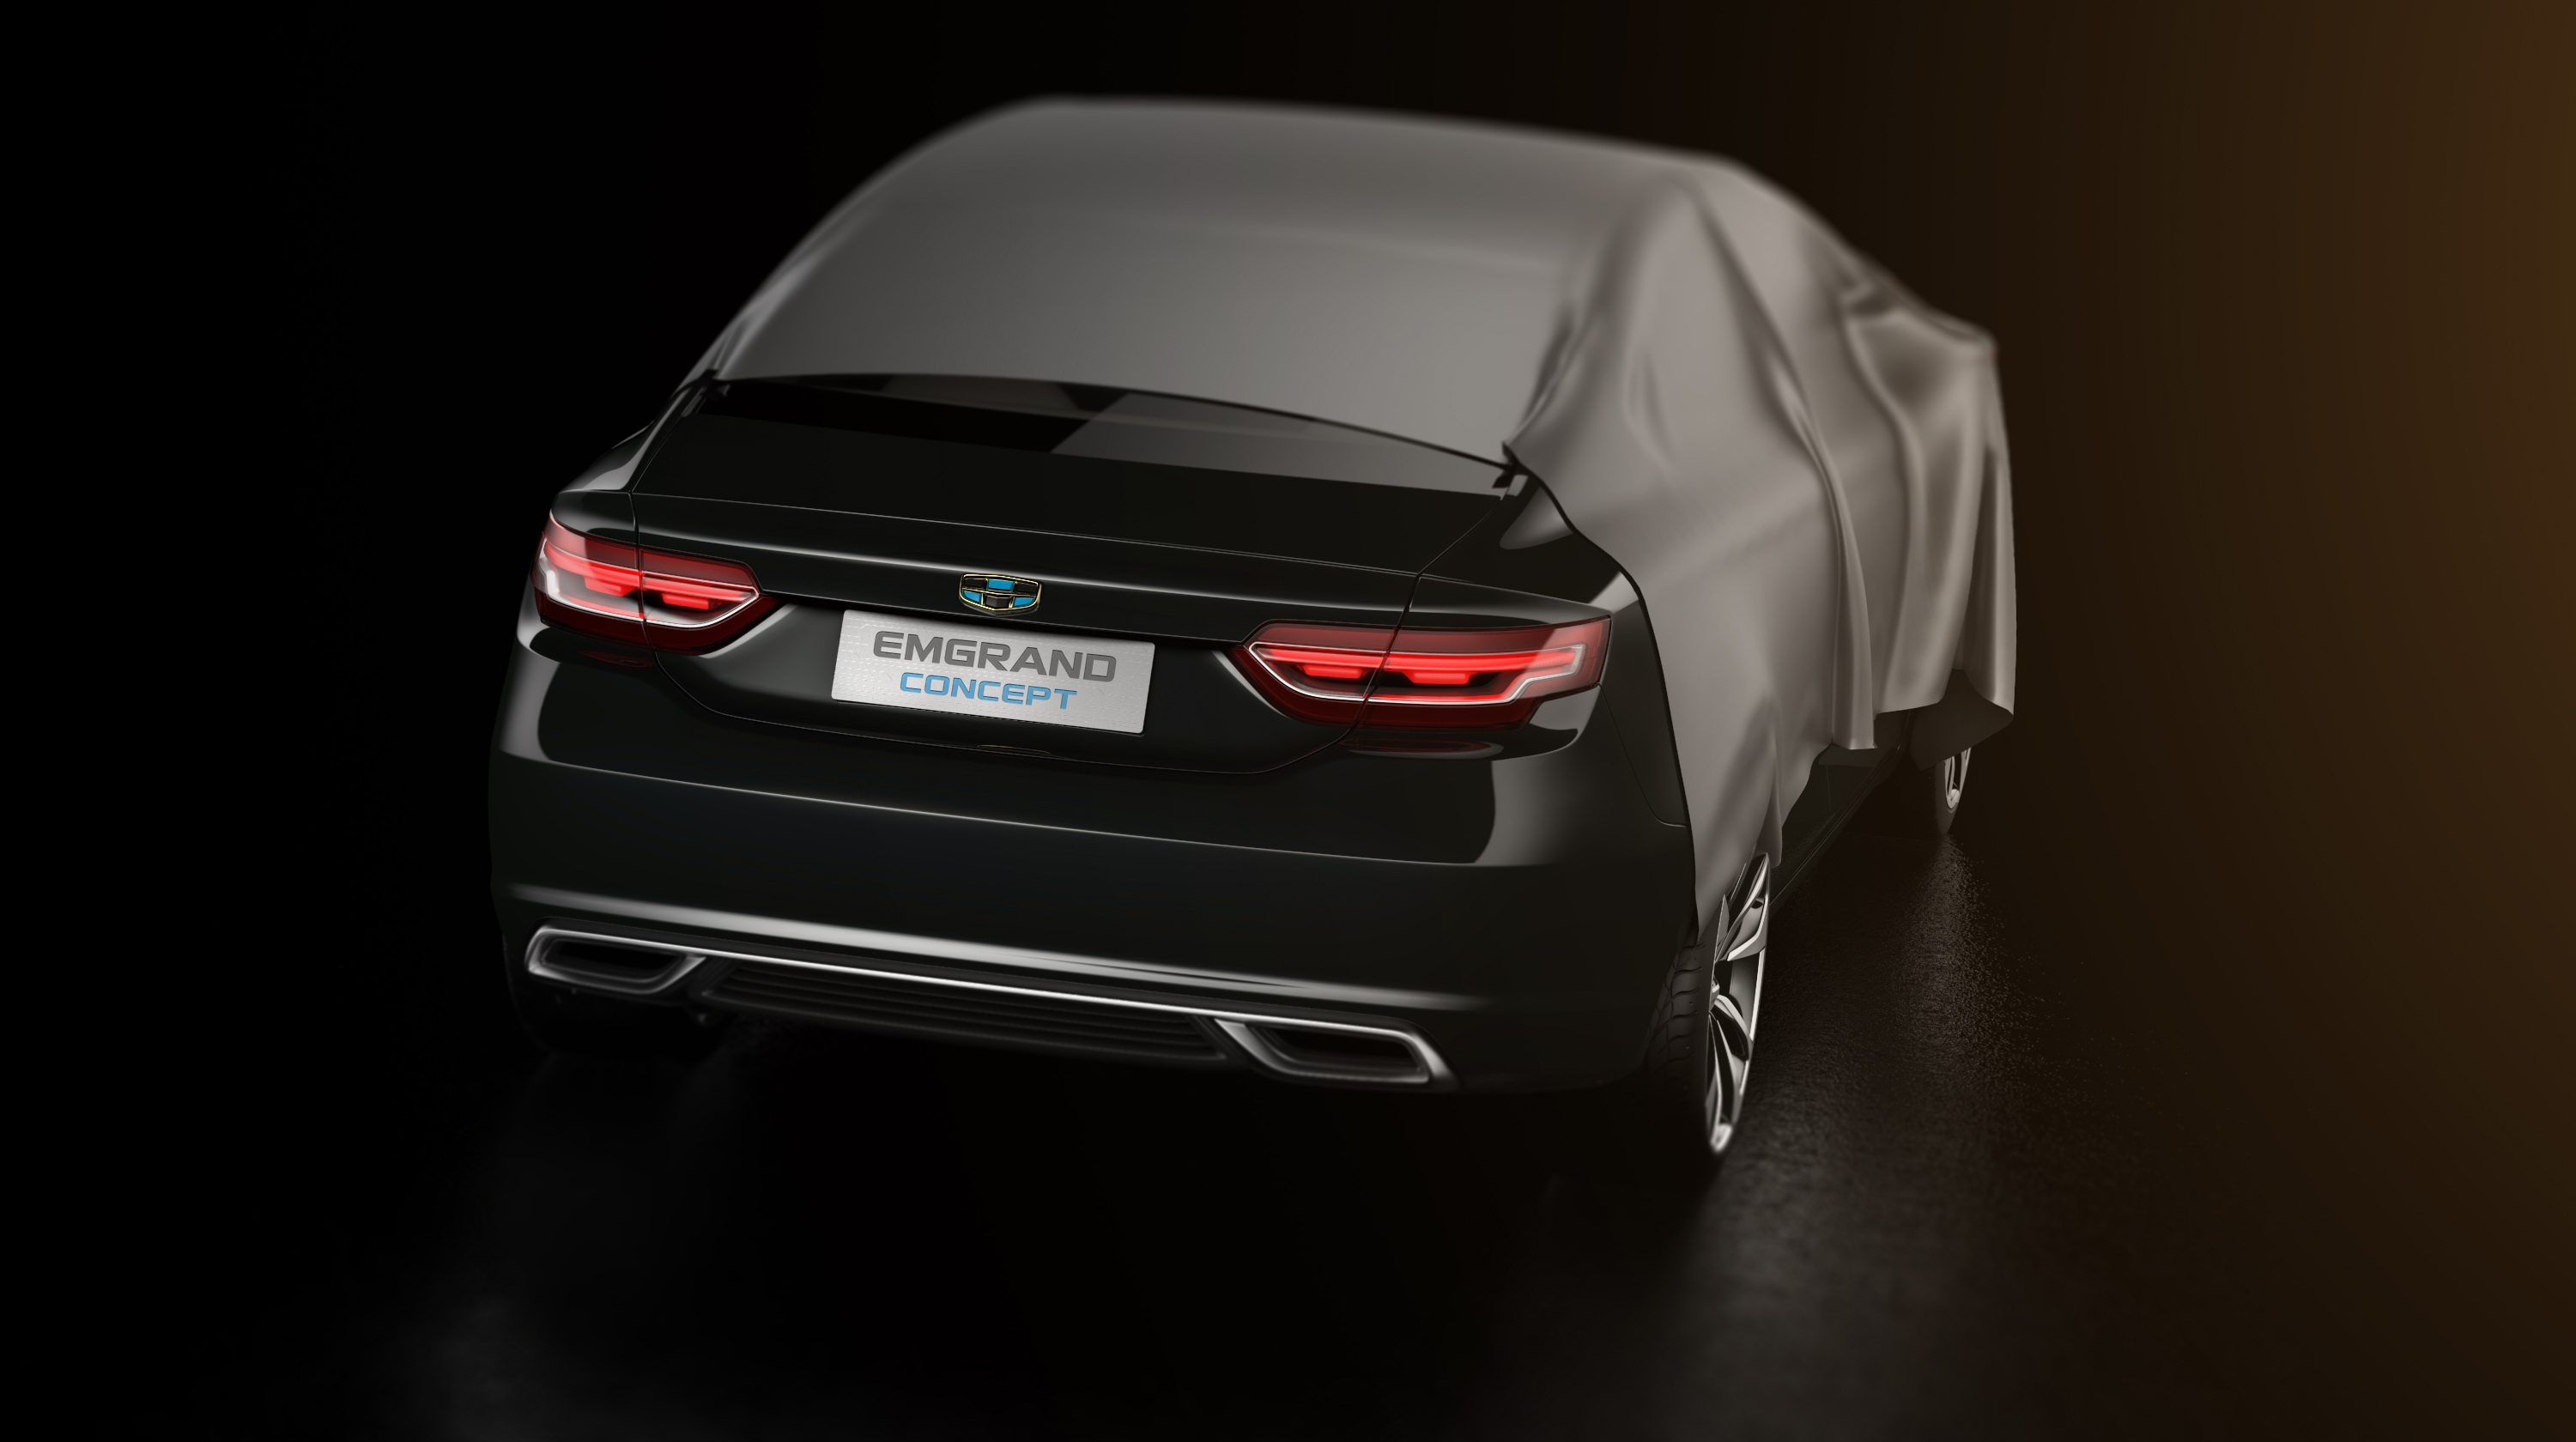 Geely_Emgrand_Concept.JPG